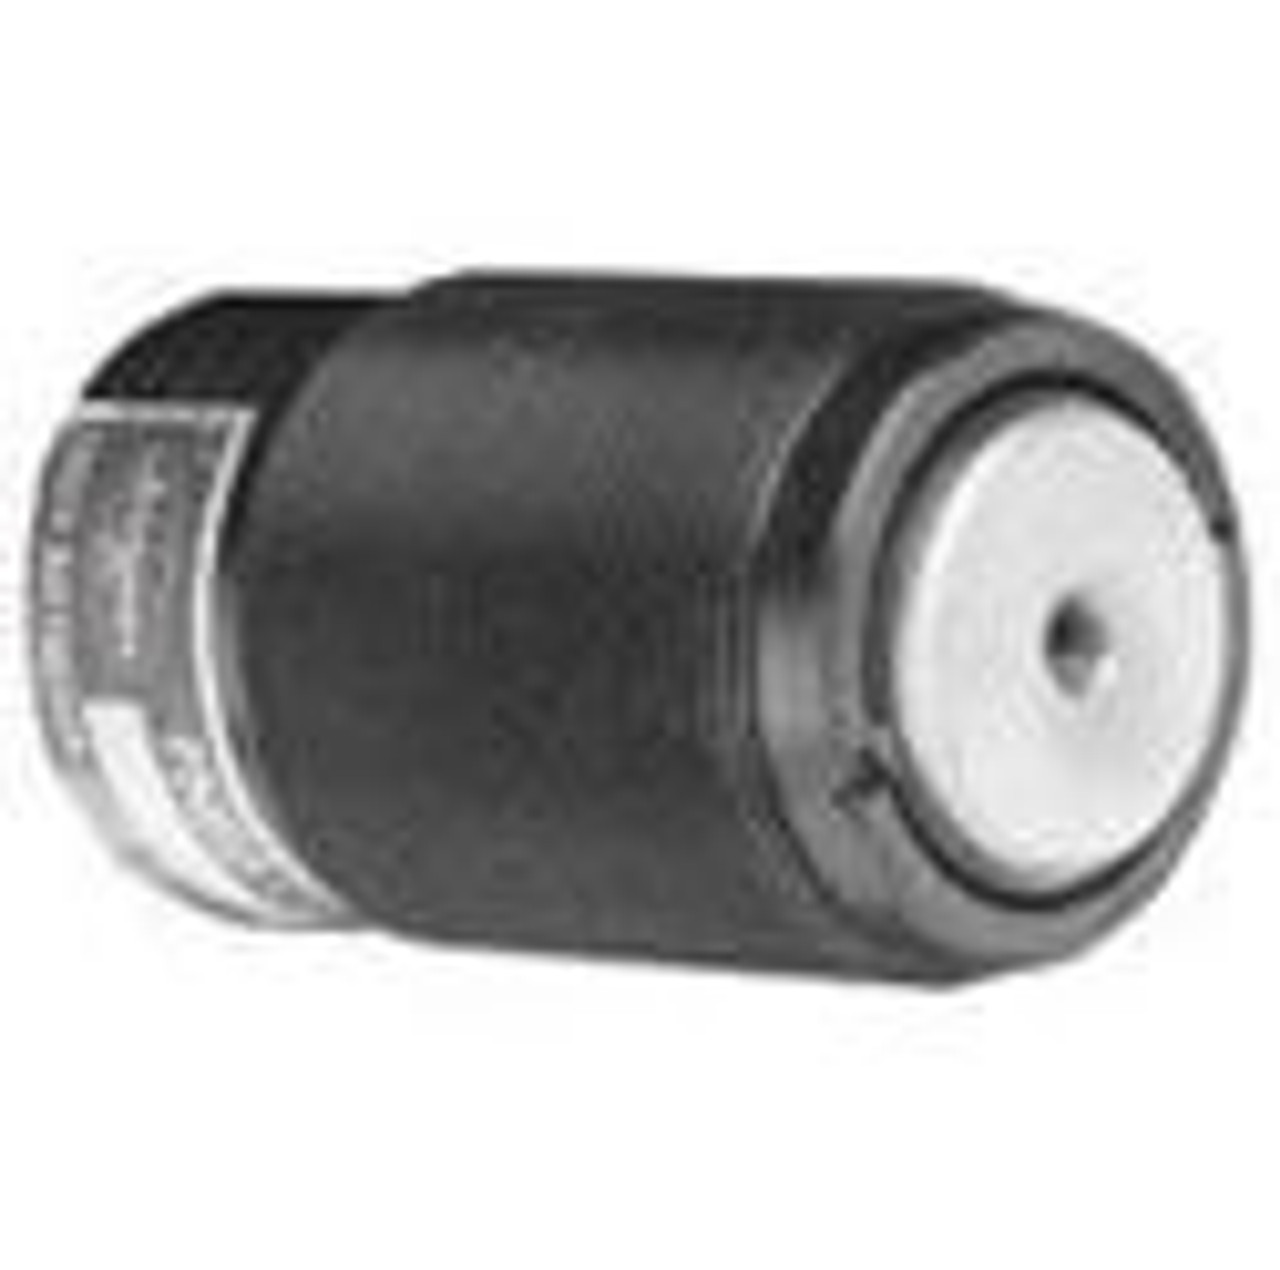 Jergens 60465 Hydraulics Threaded Clamping Cylinder for sale online